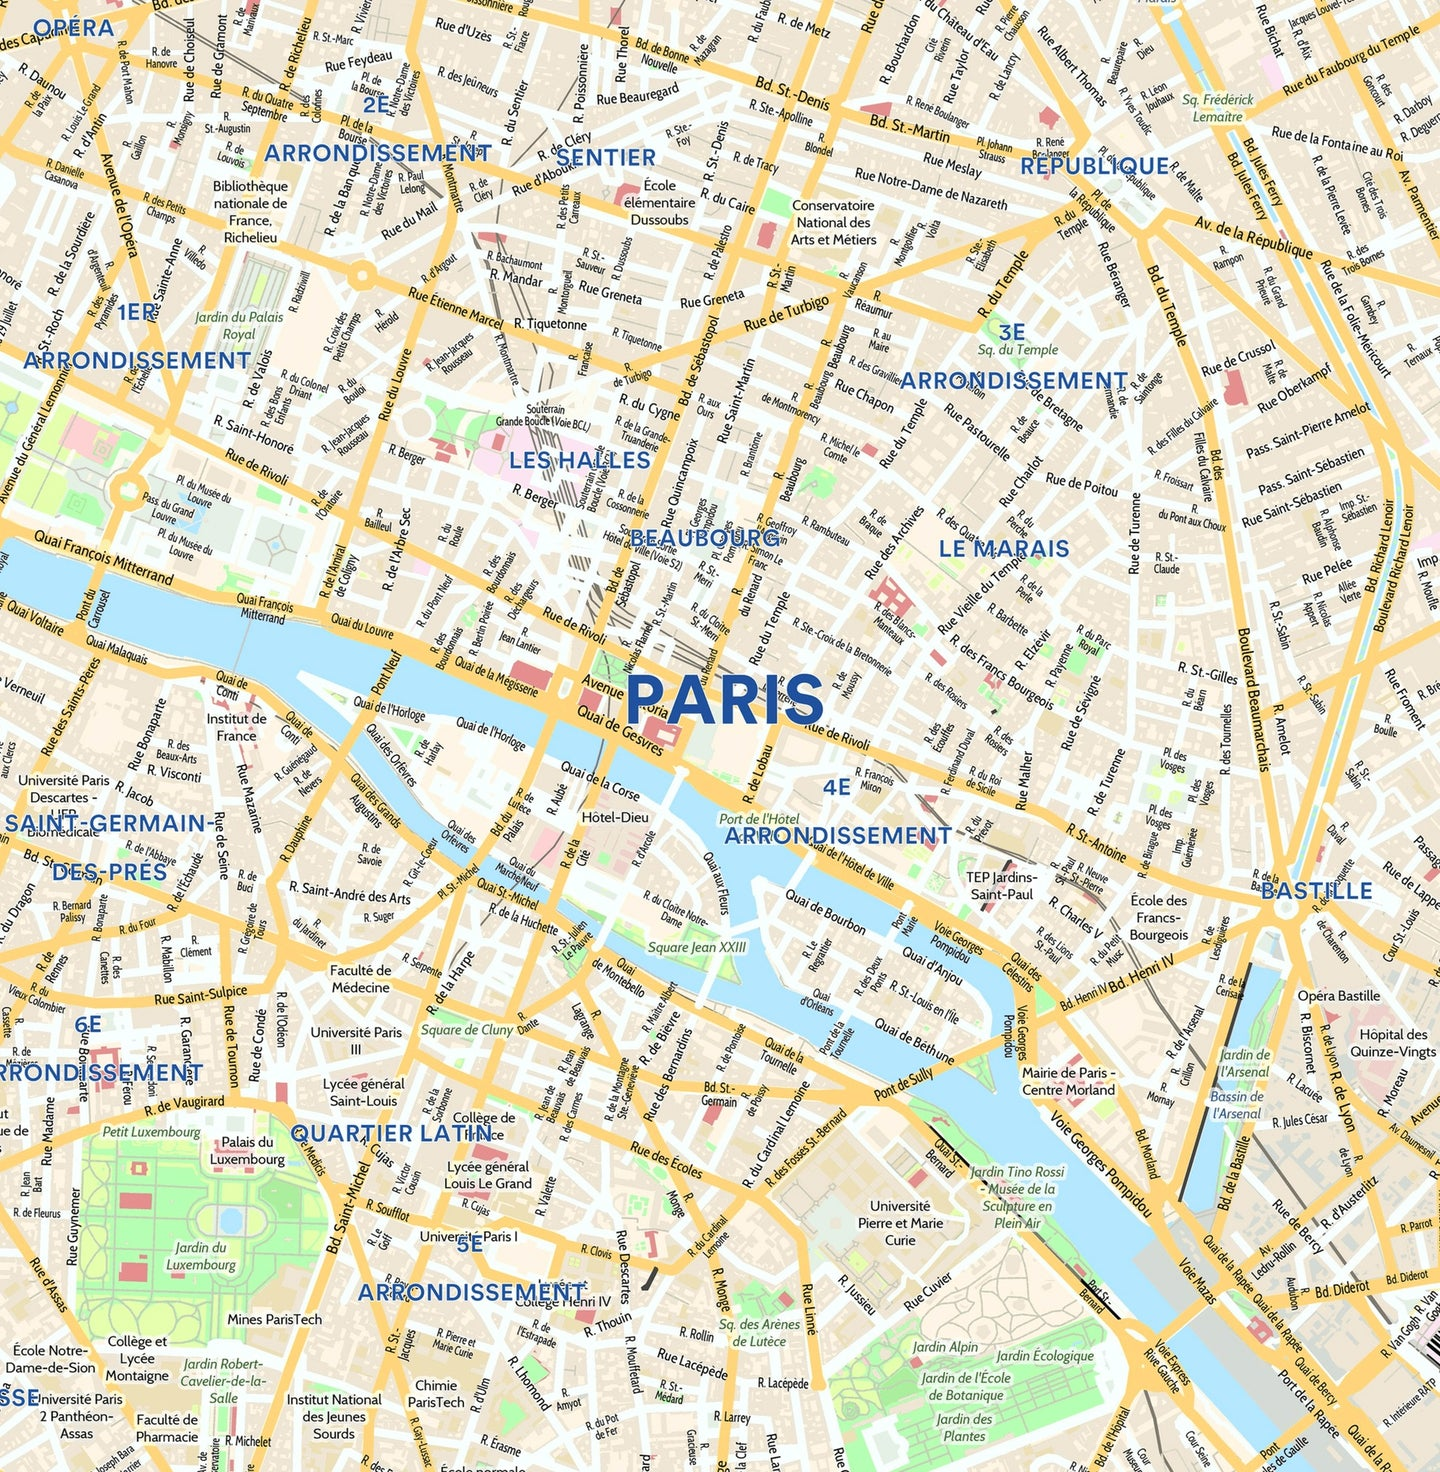 Maps Of Paris France Paris City Map   Laminated Wall Map of Paris, France